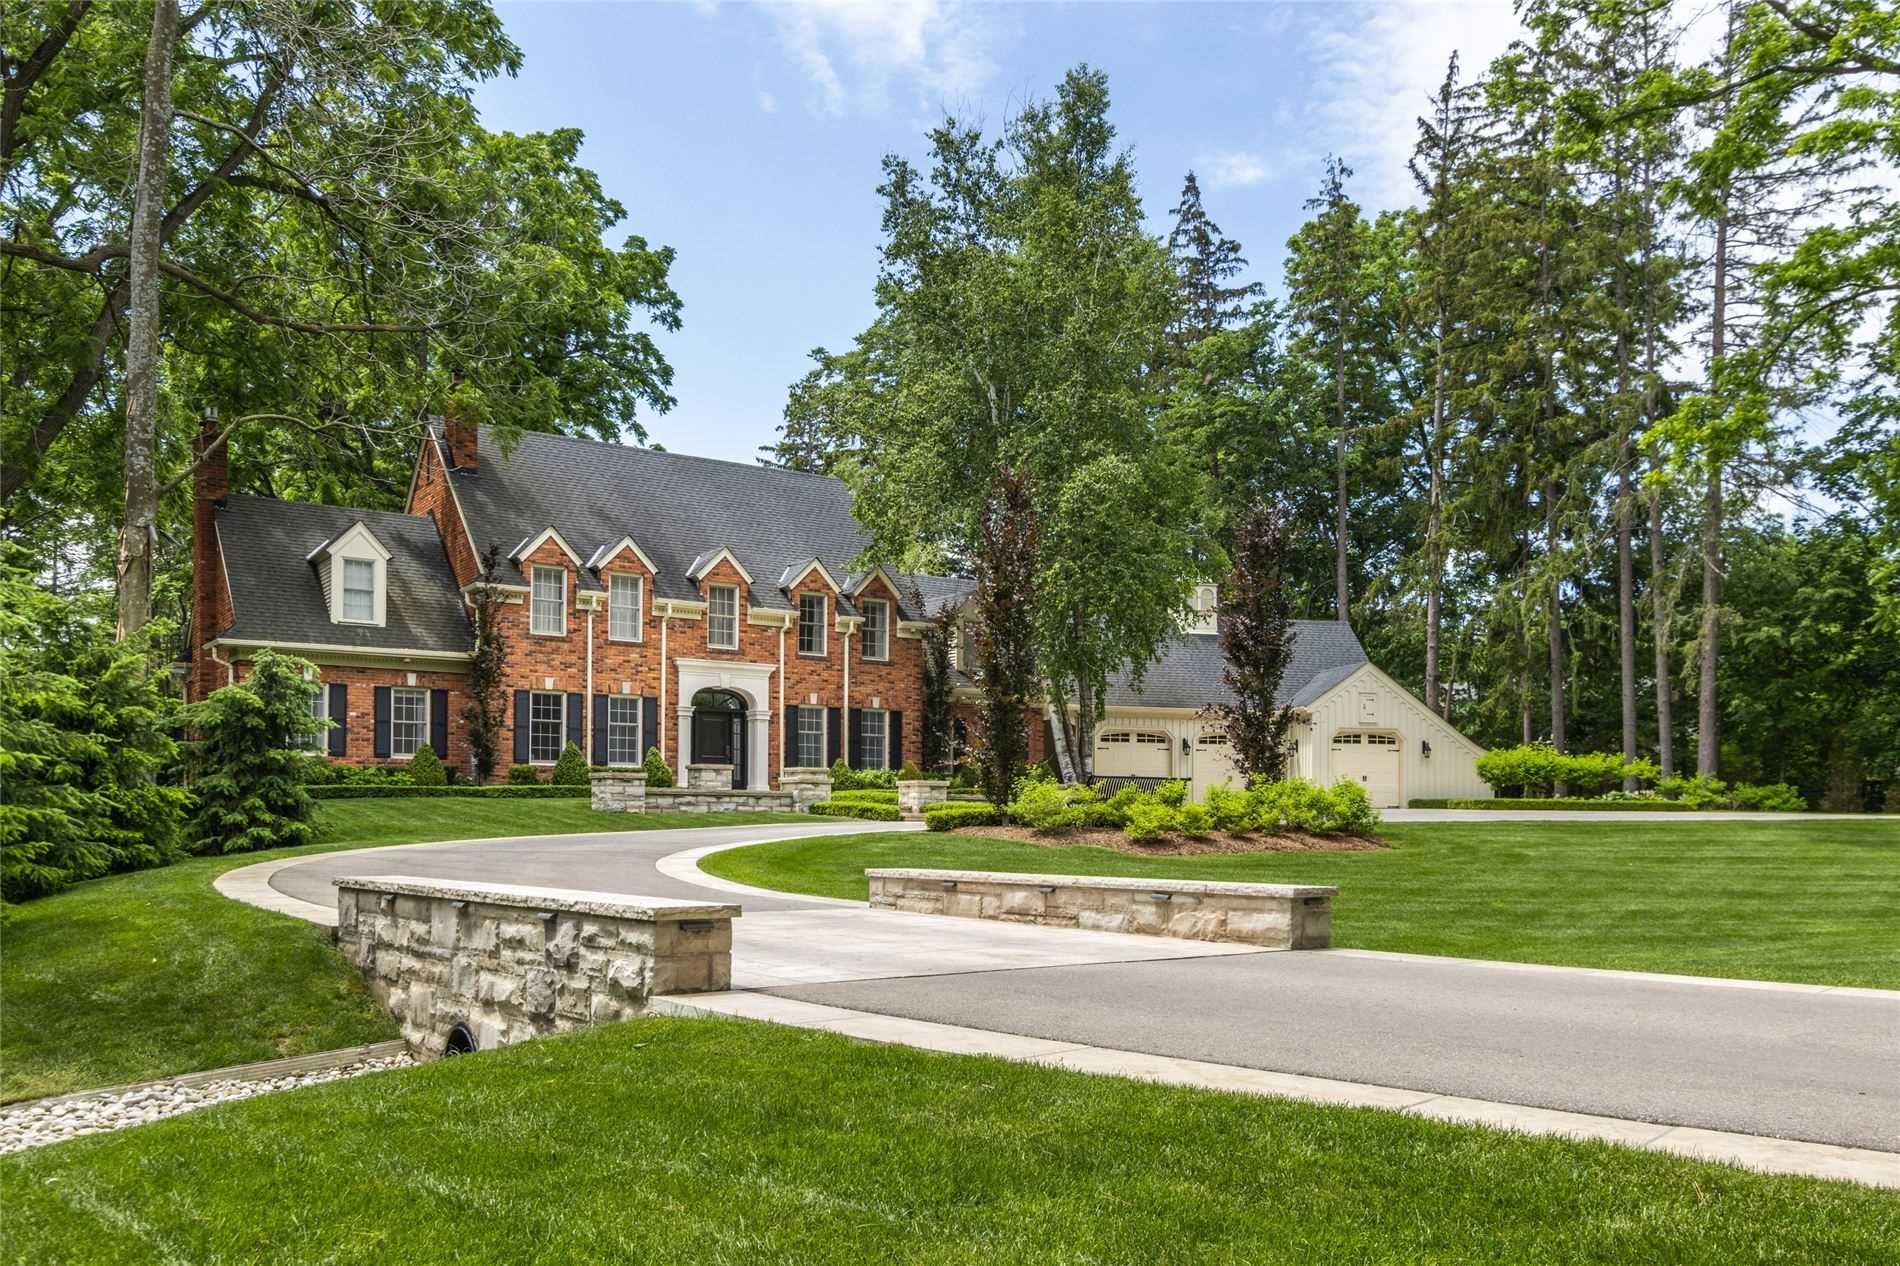 140 Chartwell Rd, Oakville, Ontario L6J3Z6, 5 Bedrooms Bedrooms, 19 Rooms Rooms,7 BathroomsBathrooms,Detached,For Sale,Chartwell,W4837395